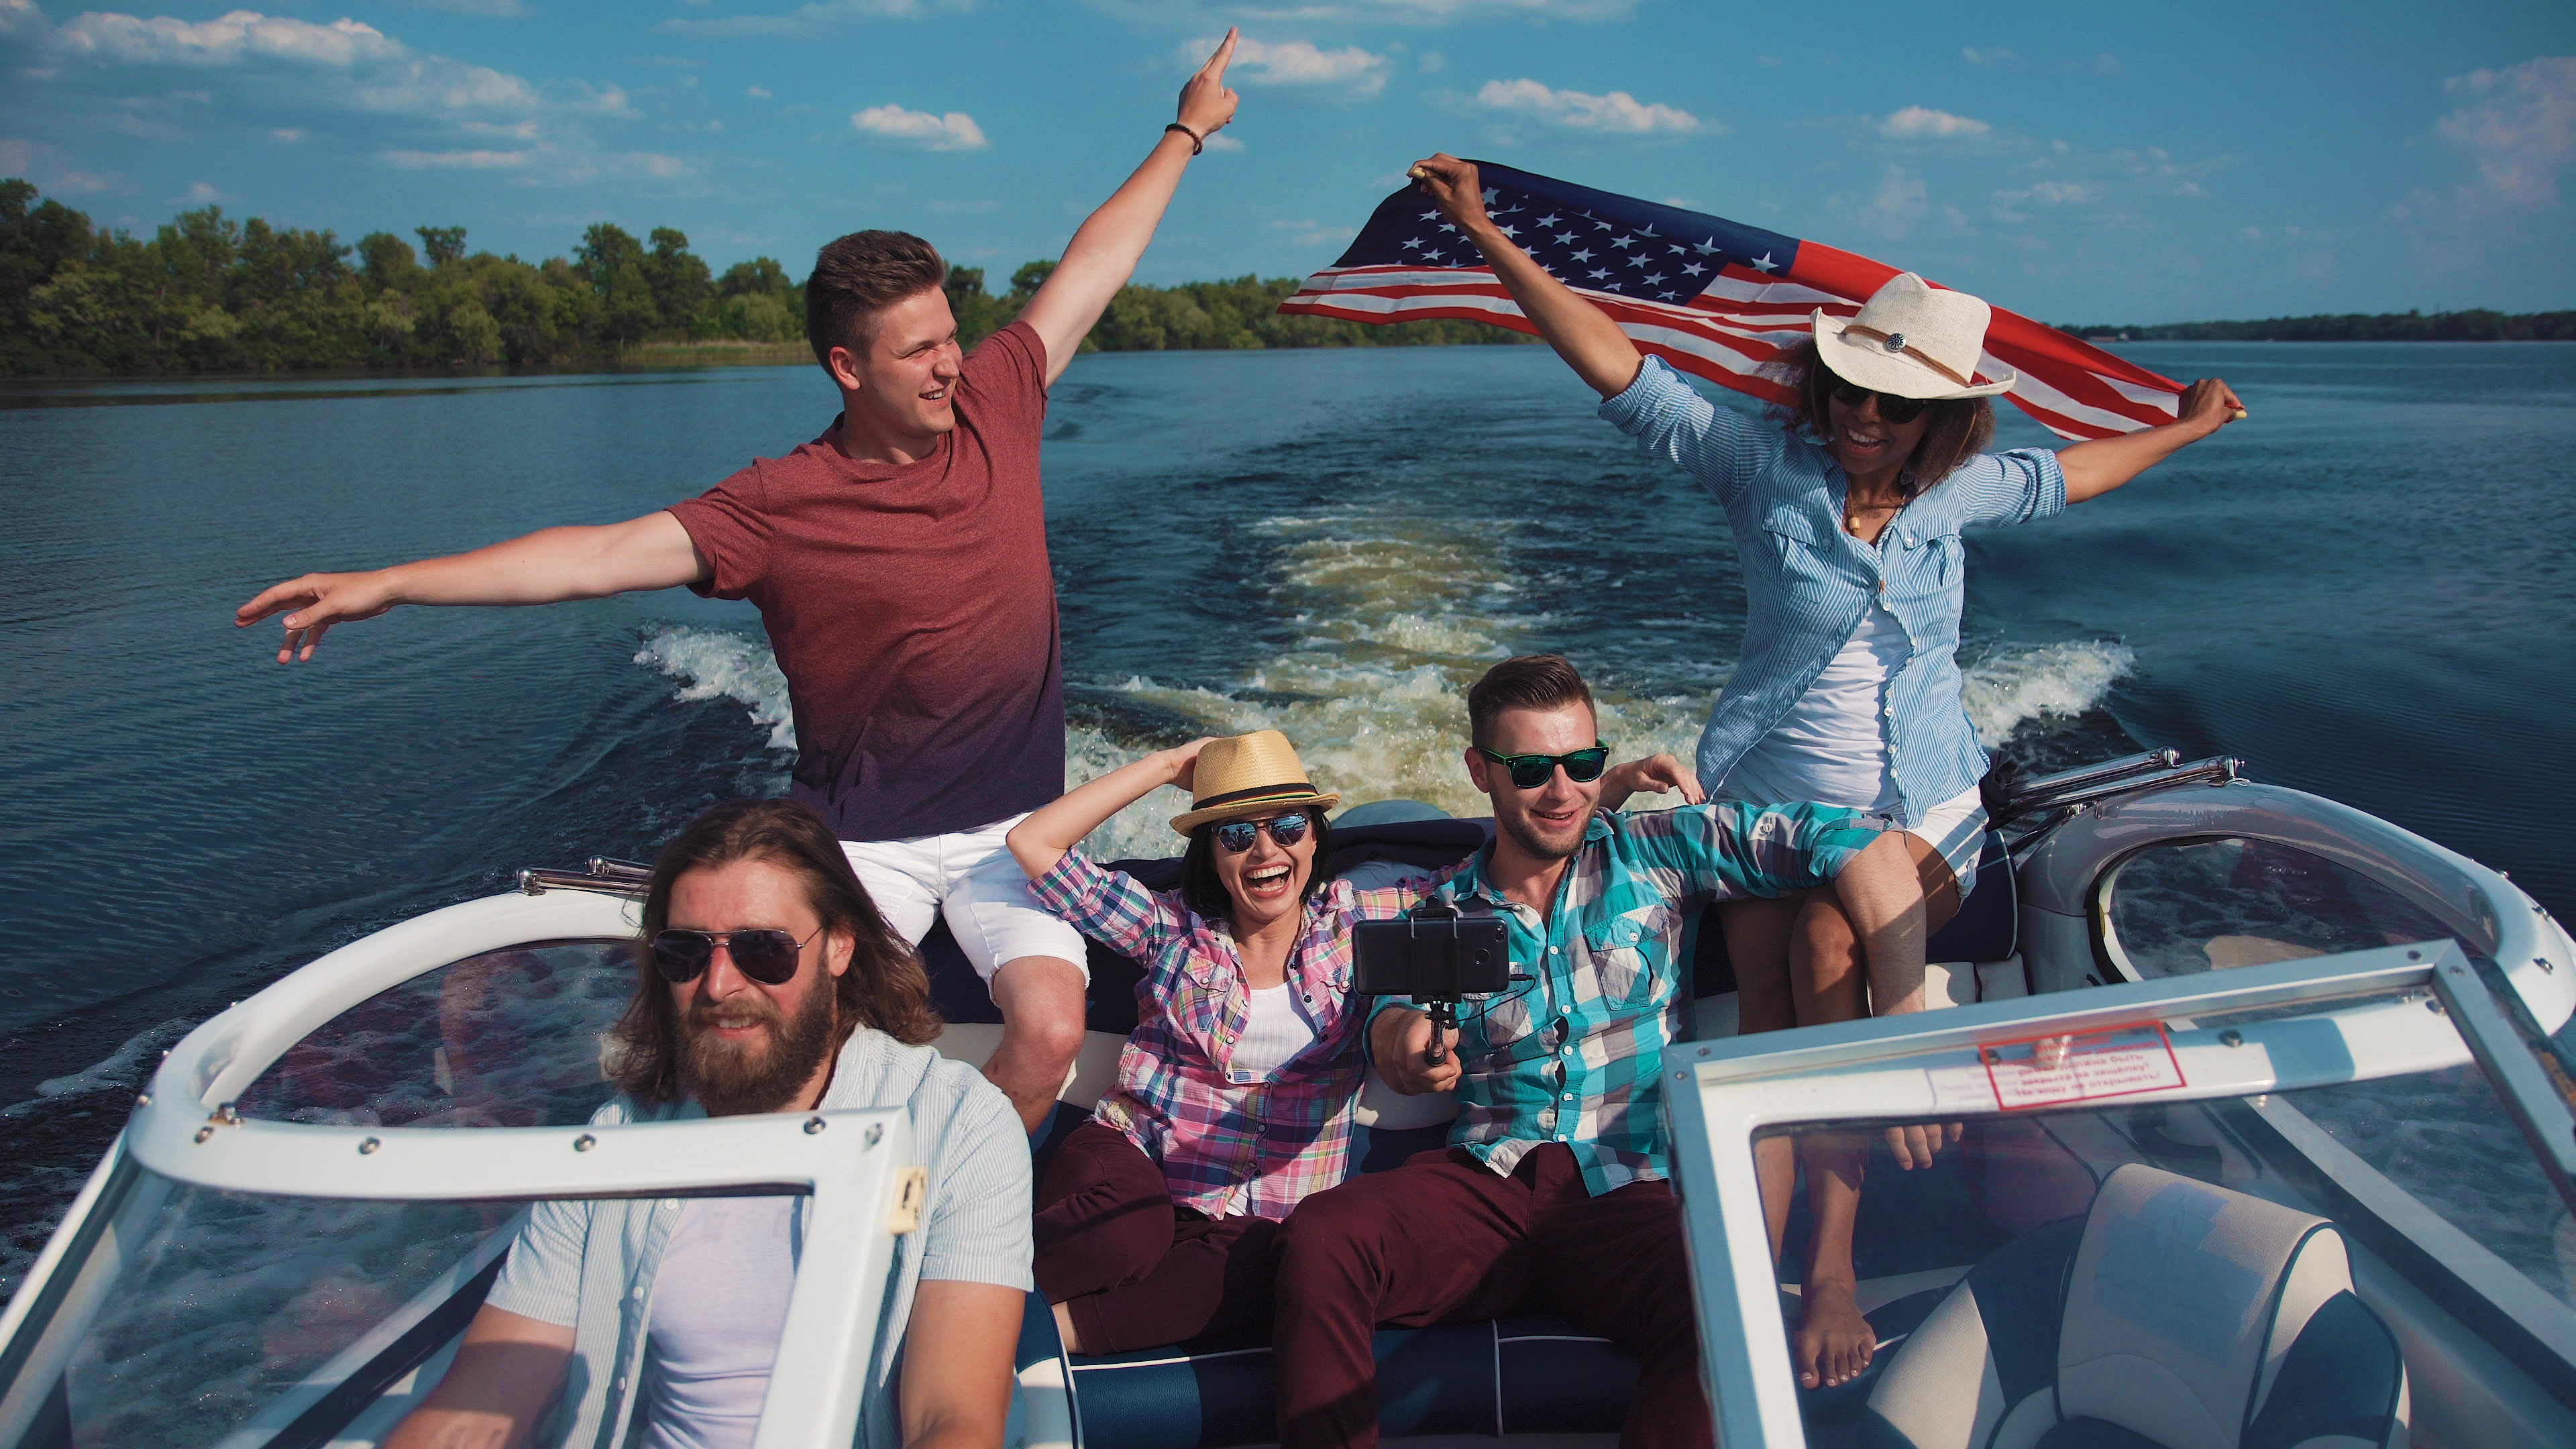 Group of cheerful friends on boat celebr